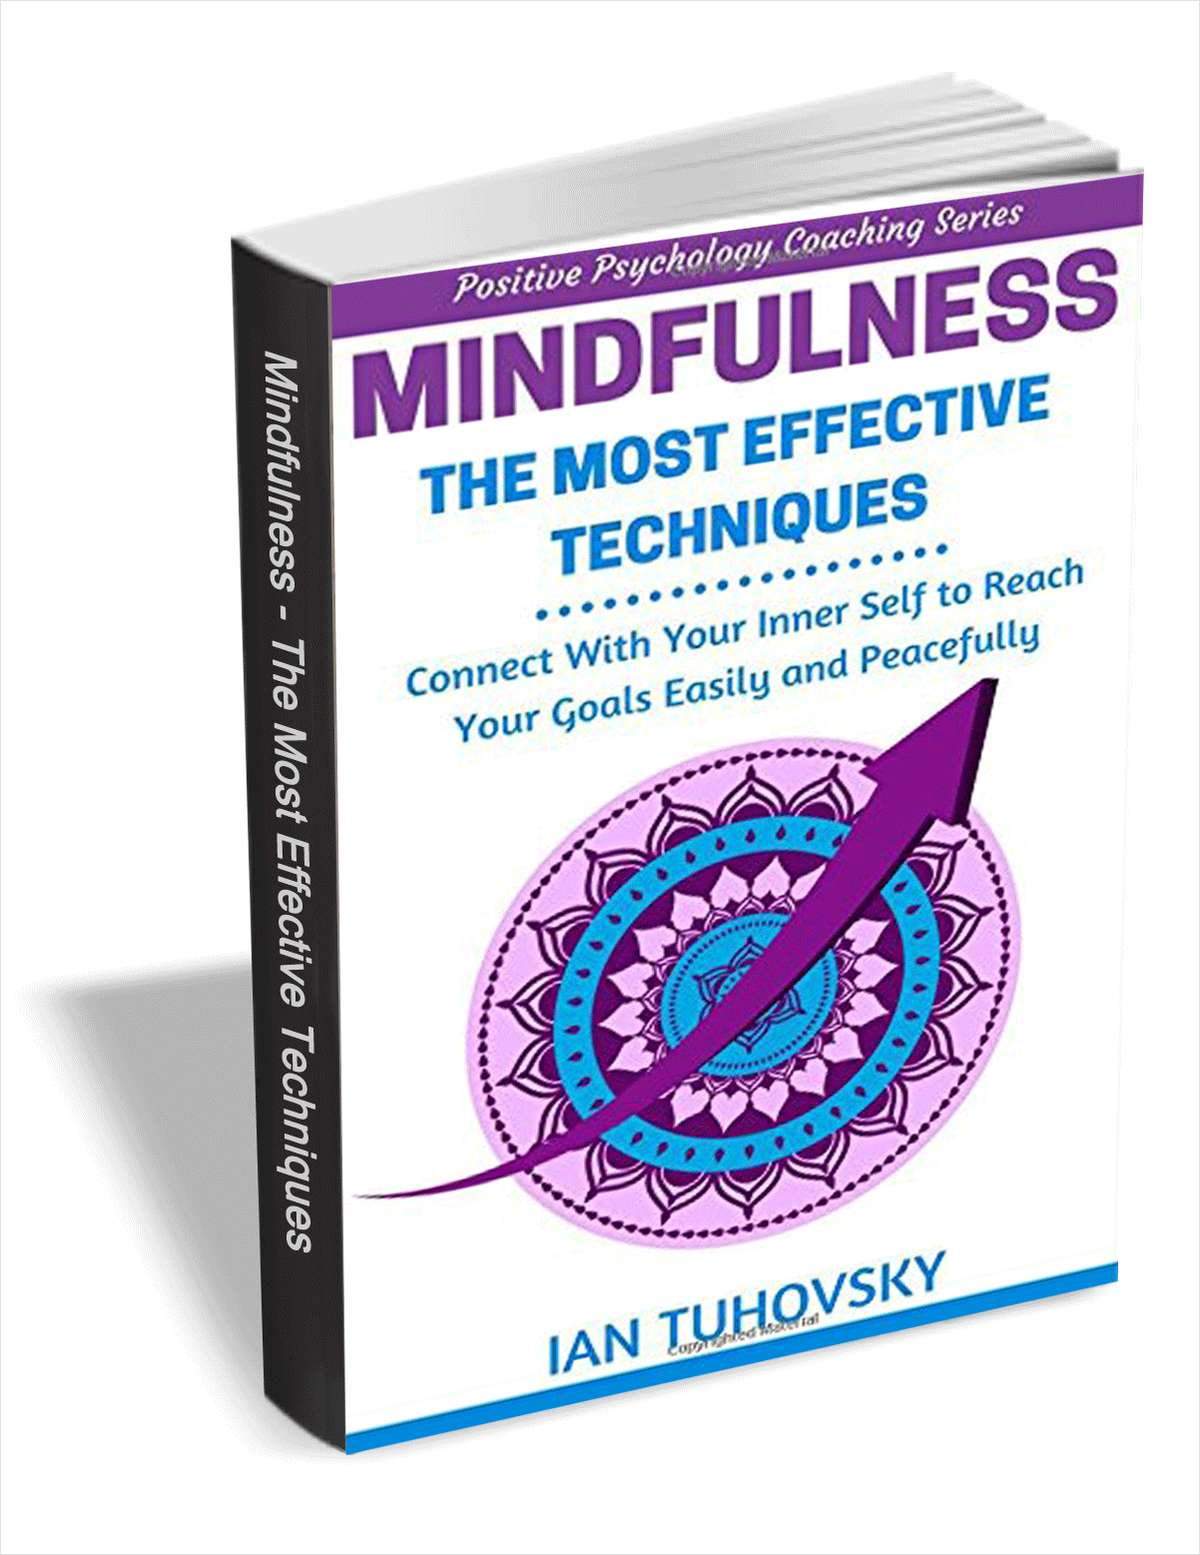 Mindfulness: The Most Effective Techniques - Connect With Your Inner Self to Reach Your Goals Easily and Peacefully